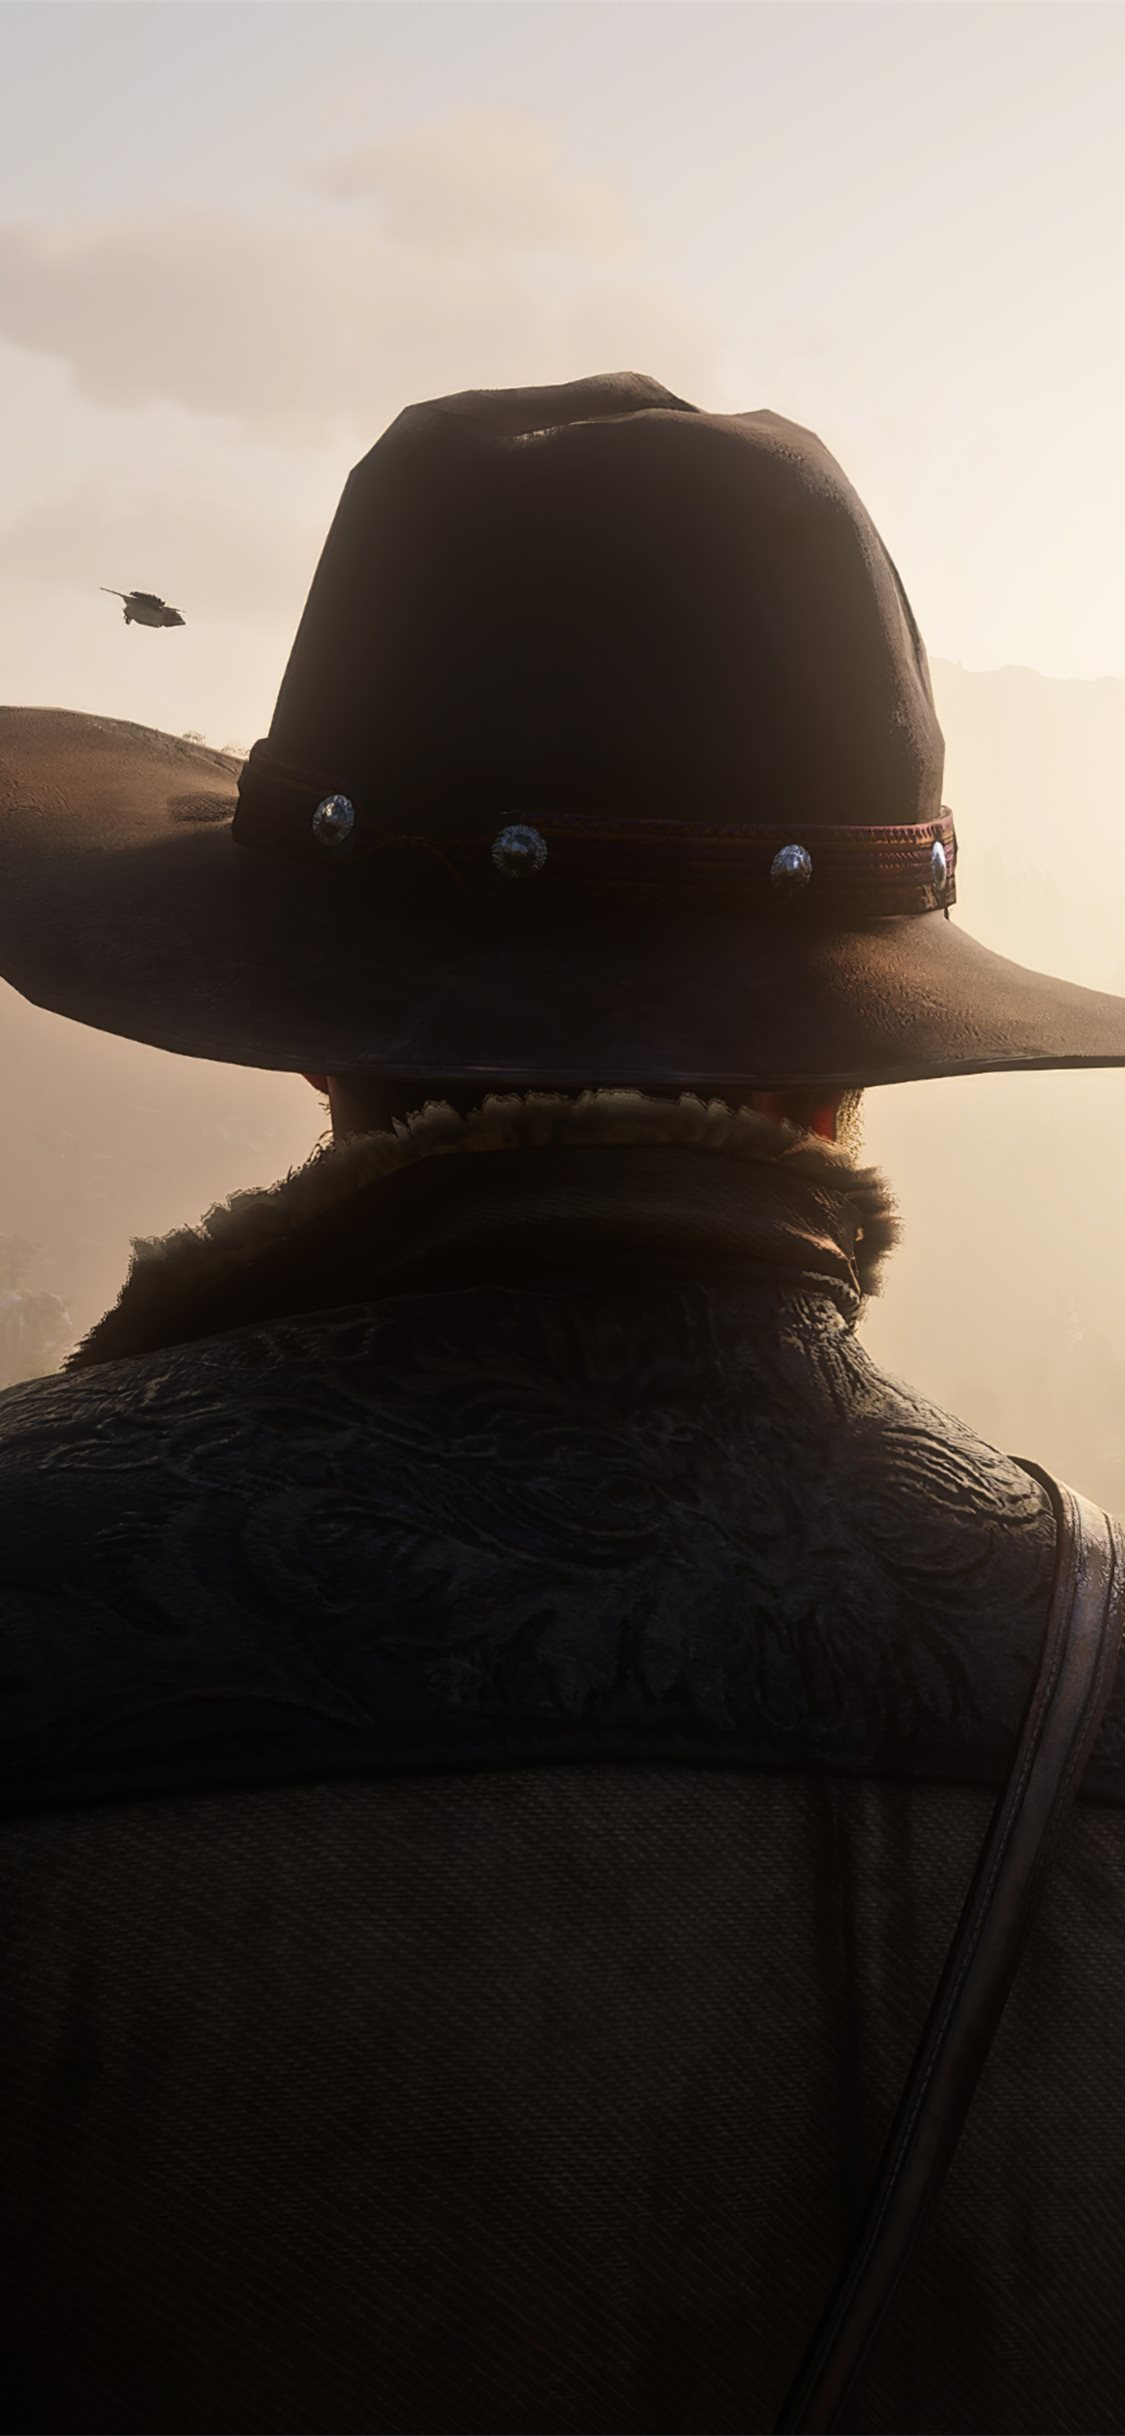 2020 Red Dead Redemption 2 4k Iphone 11 Wallpapers Free Download